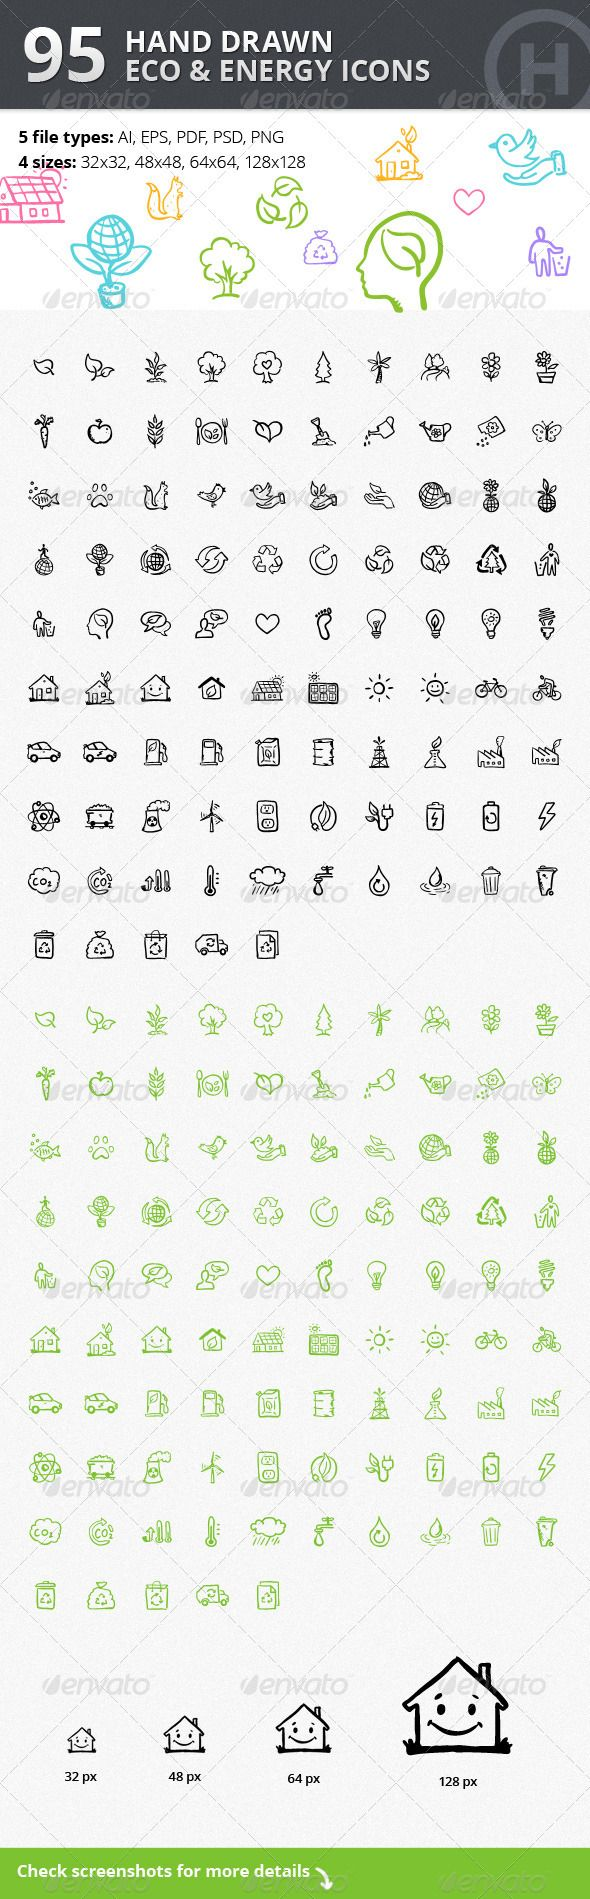 95 Hand-drawn Eco & Energy Icons Design Template - Web Icons Design Template PSD, Vector EPS, AI Illustrator. Download here: https://graphicriver.net/item/95-handdrawn-eco-energy-icons/3119527?ref=yinkira